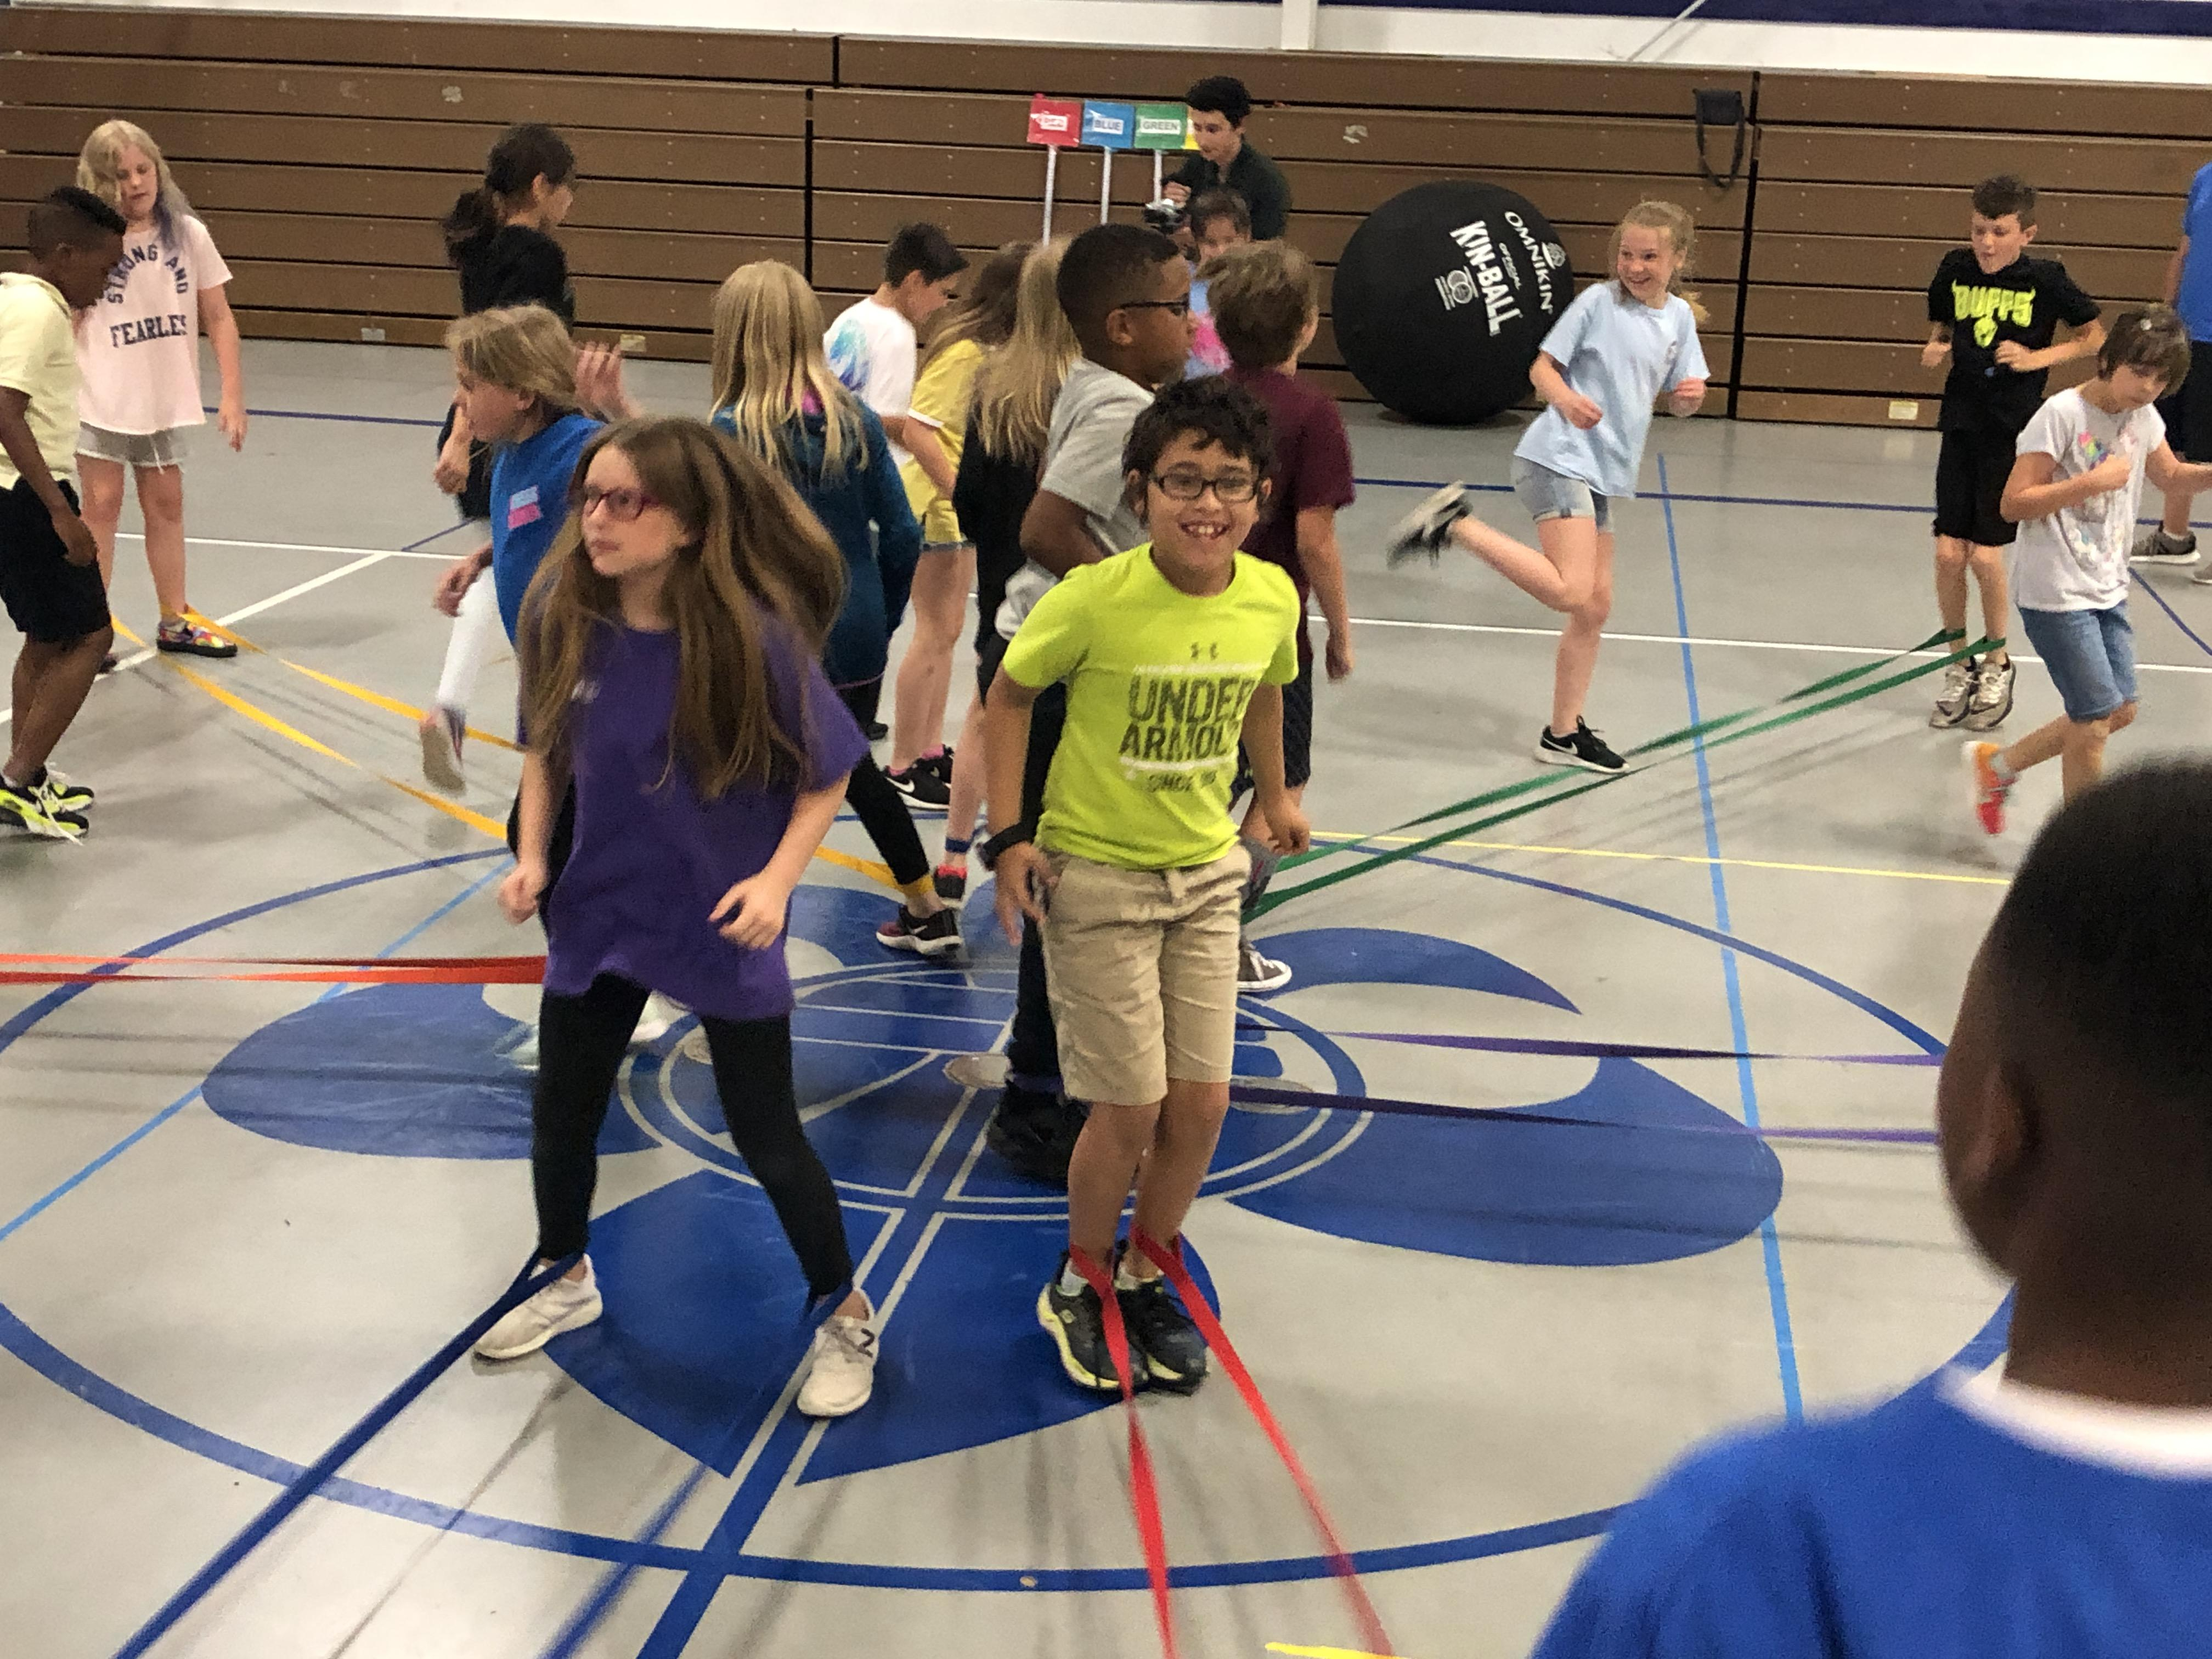 Fine Arts Academy students learned Tinikling, a traditional Philippine Folk dance, in Anna Falcon's PE classes this year.